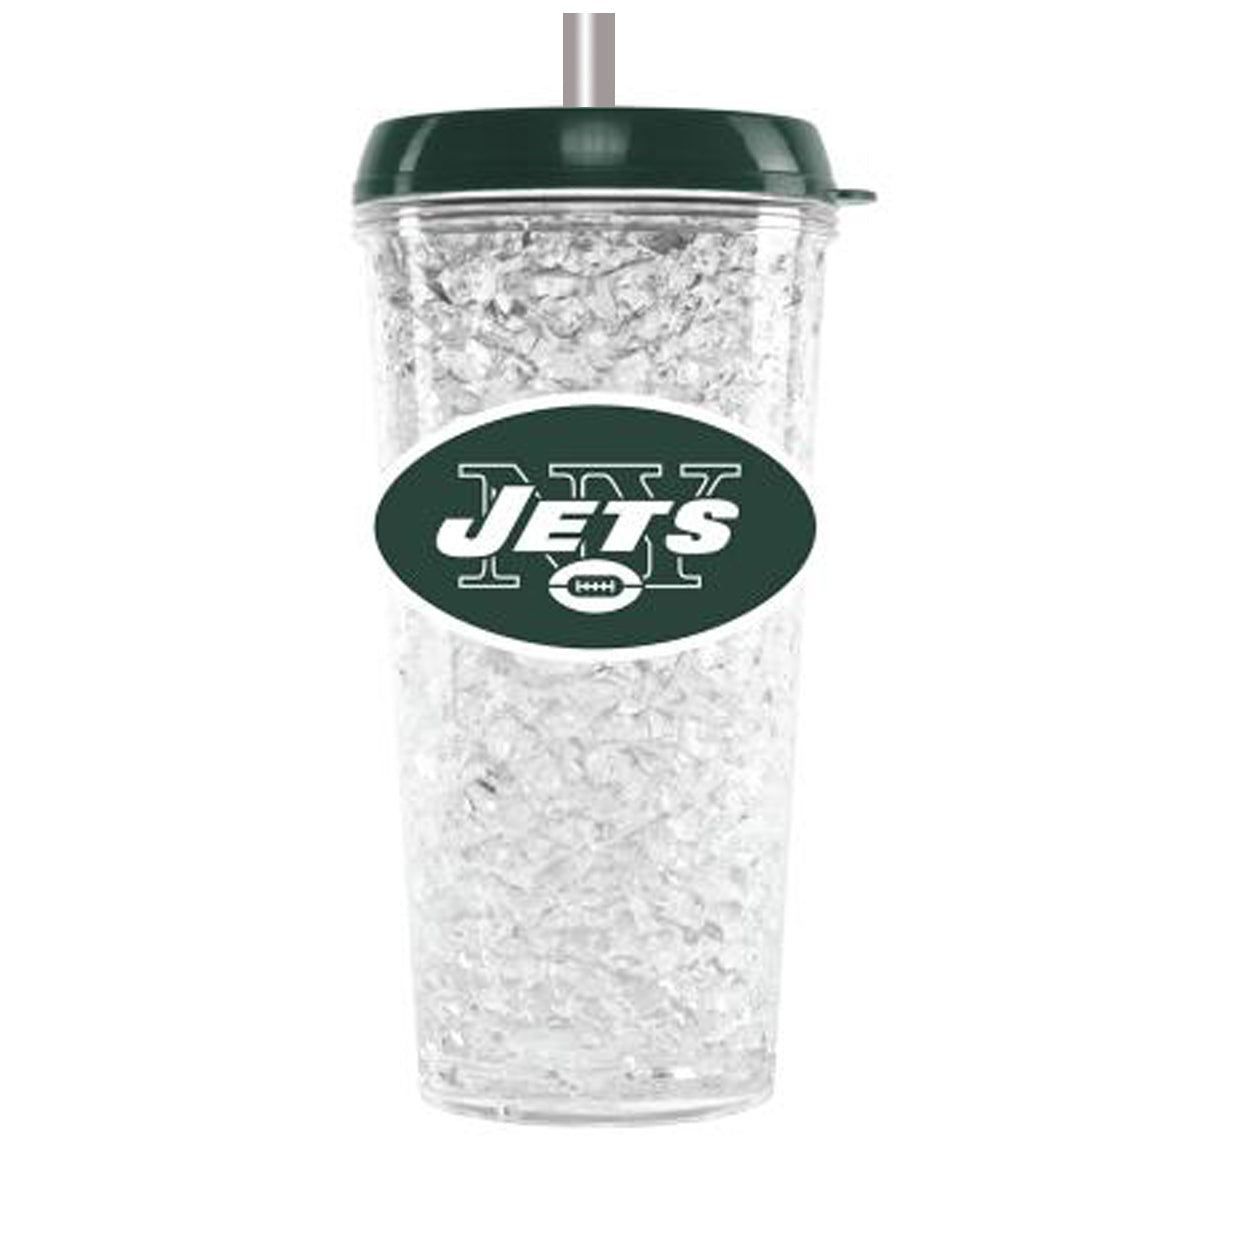 Duckhouse NFL New York Jets Crystal Freezer Straw Tumbler With Lid - Sports Butler